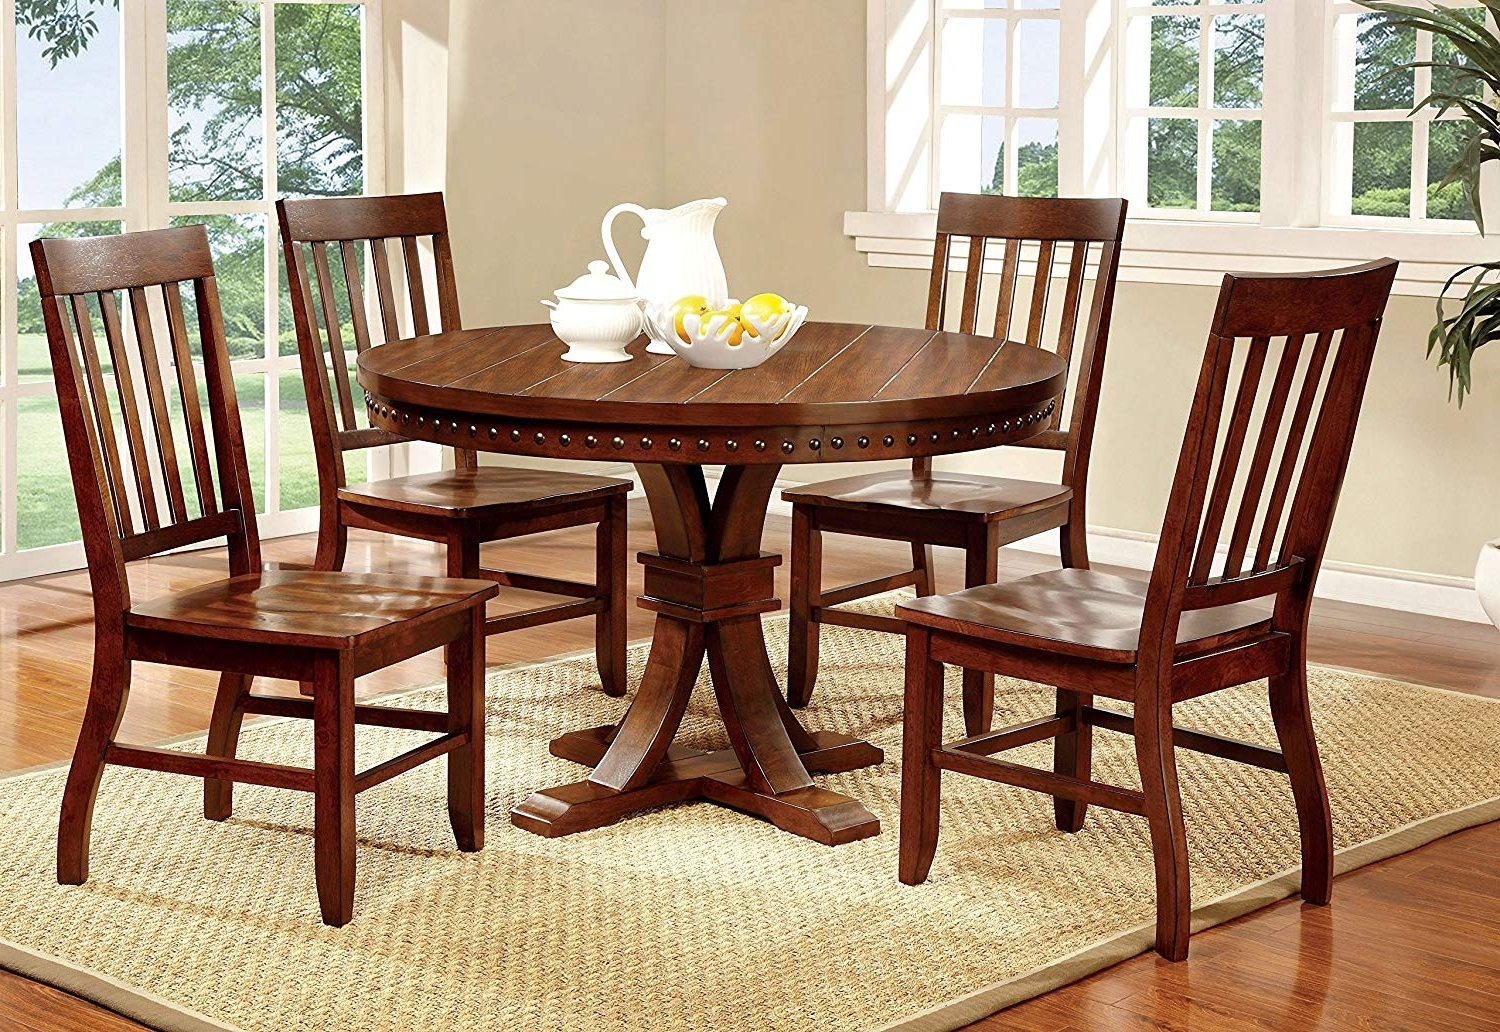 Oak Round Dining Tables And Chairs Pertaining To Famous Amazon – Furniture Of America Castile 5 Piece Transitional Round (View 15 of 25)